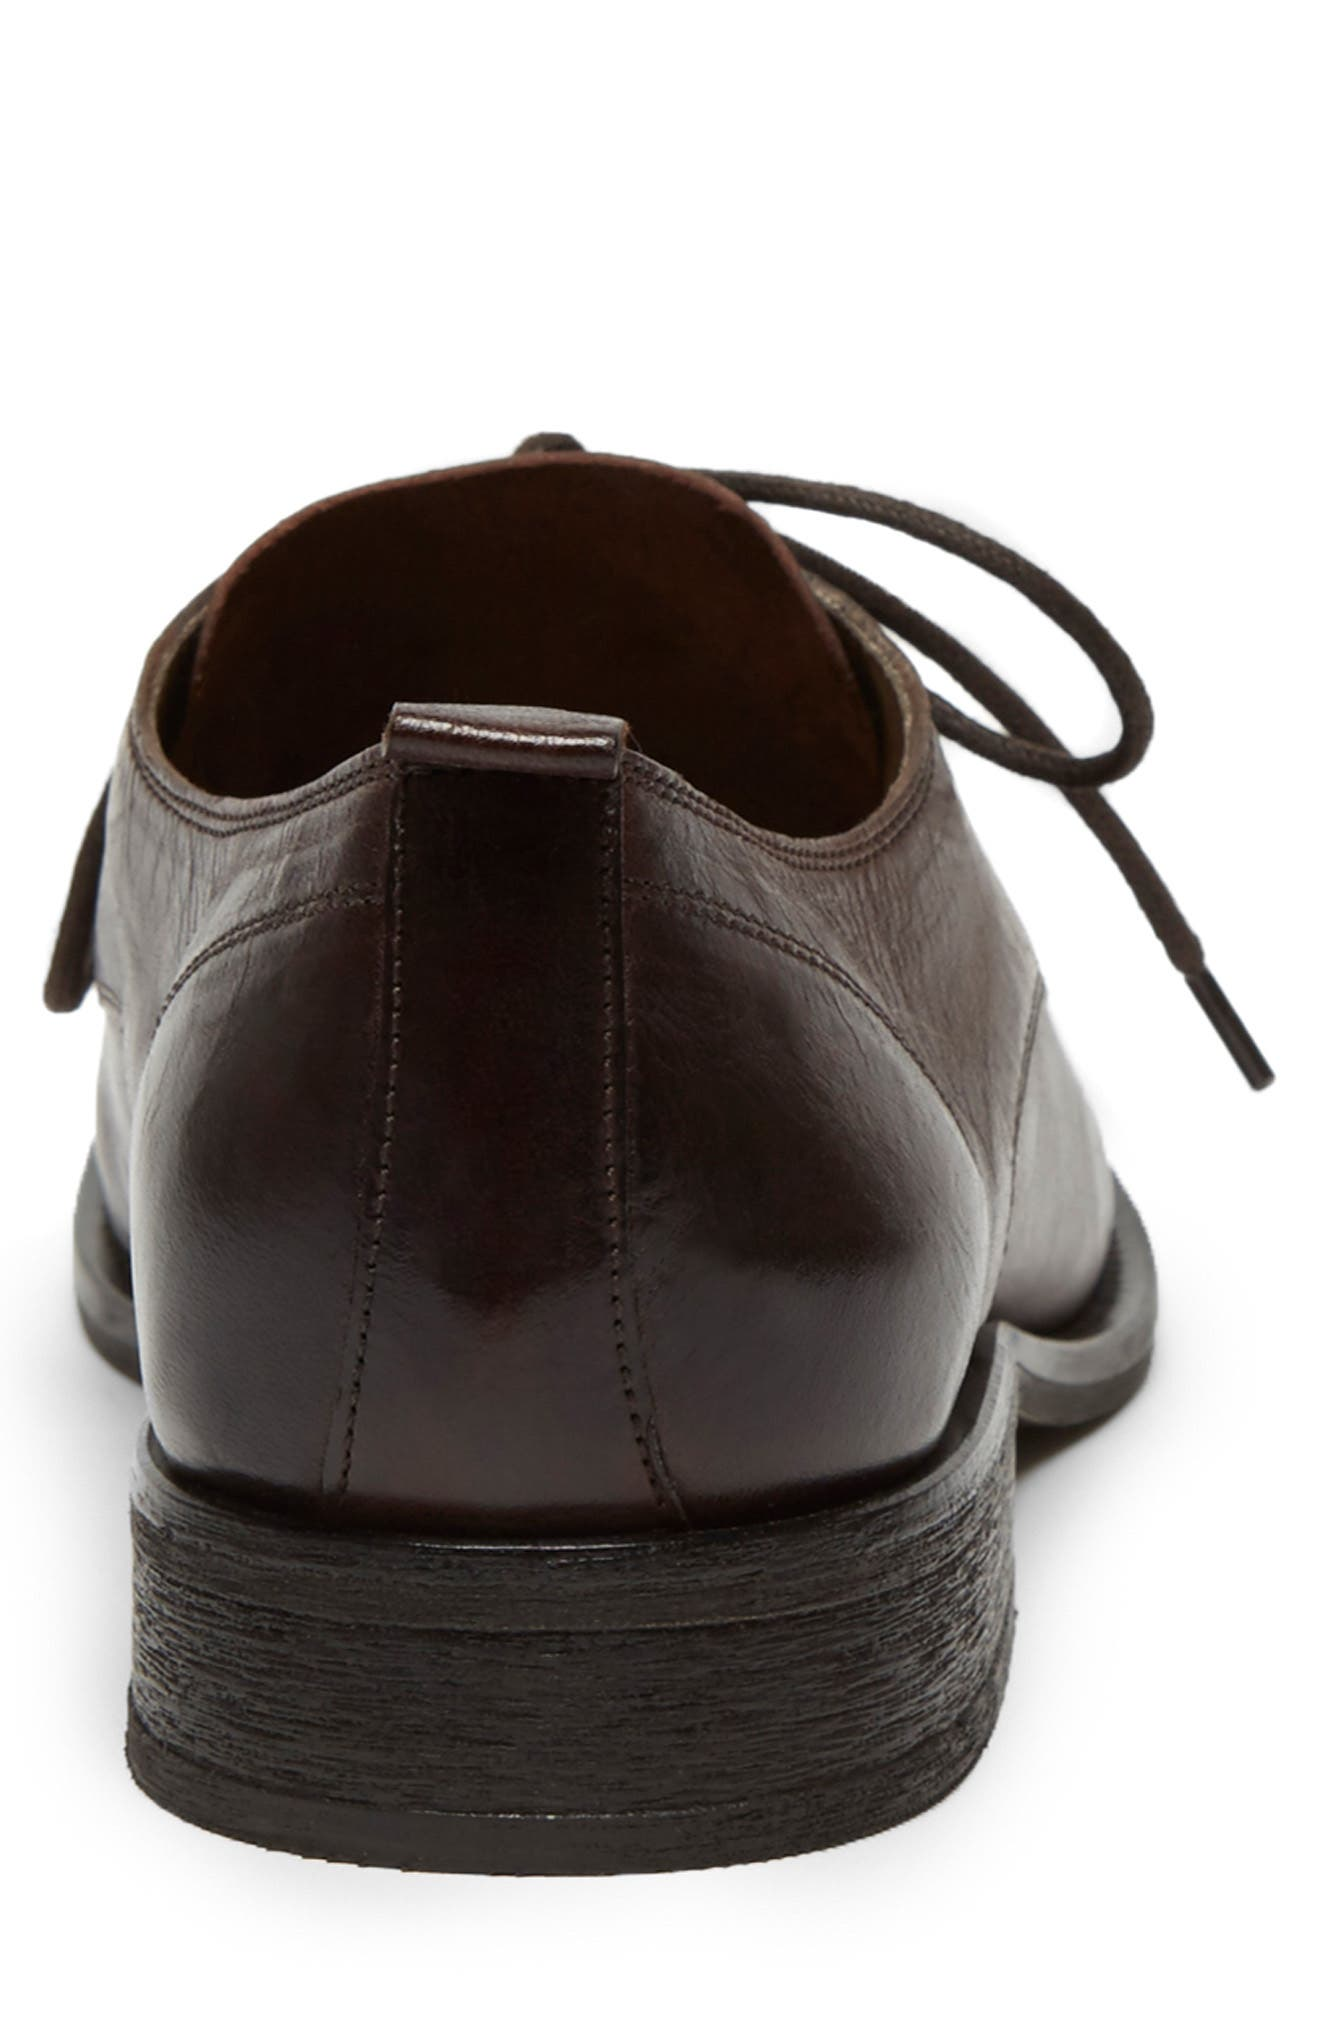 KENNETH COLE NEW YORK, Indio Plain Toe Derby, Alternate thumbnail 3, color, BROWN LEATHER